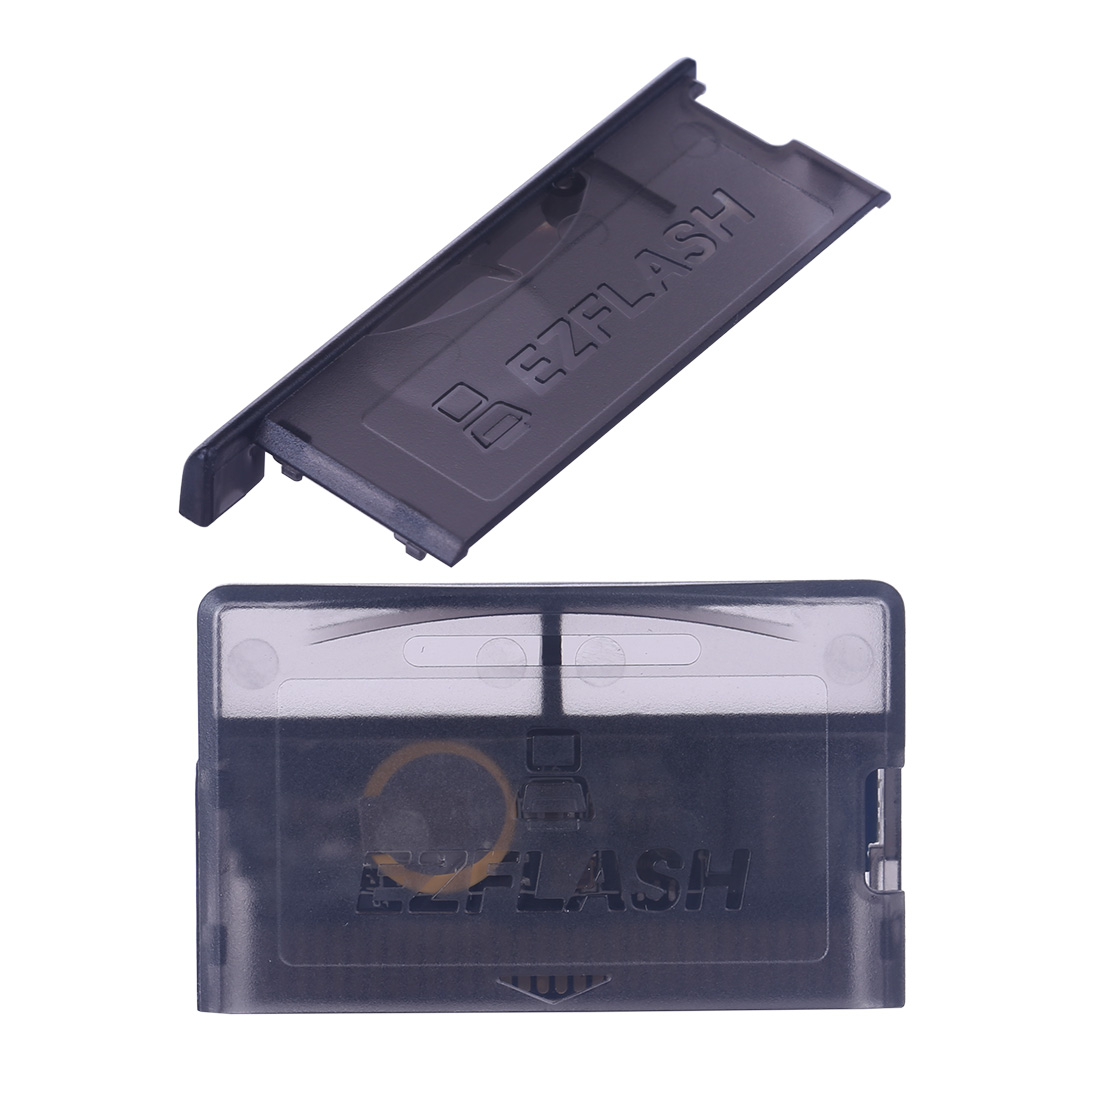 EZ-FLASH OMEGA for Game Boy Advance [Christmas Gift]